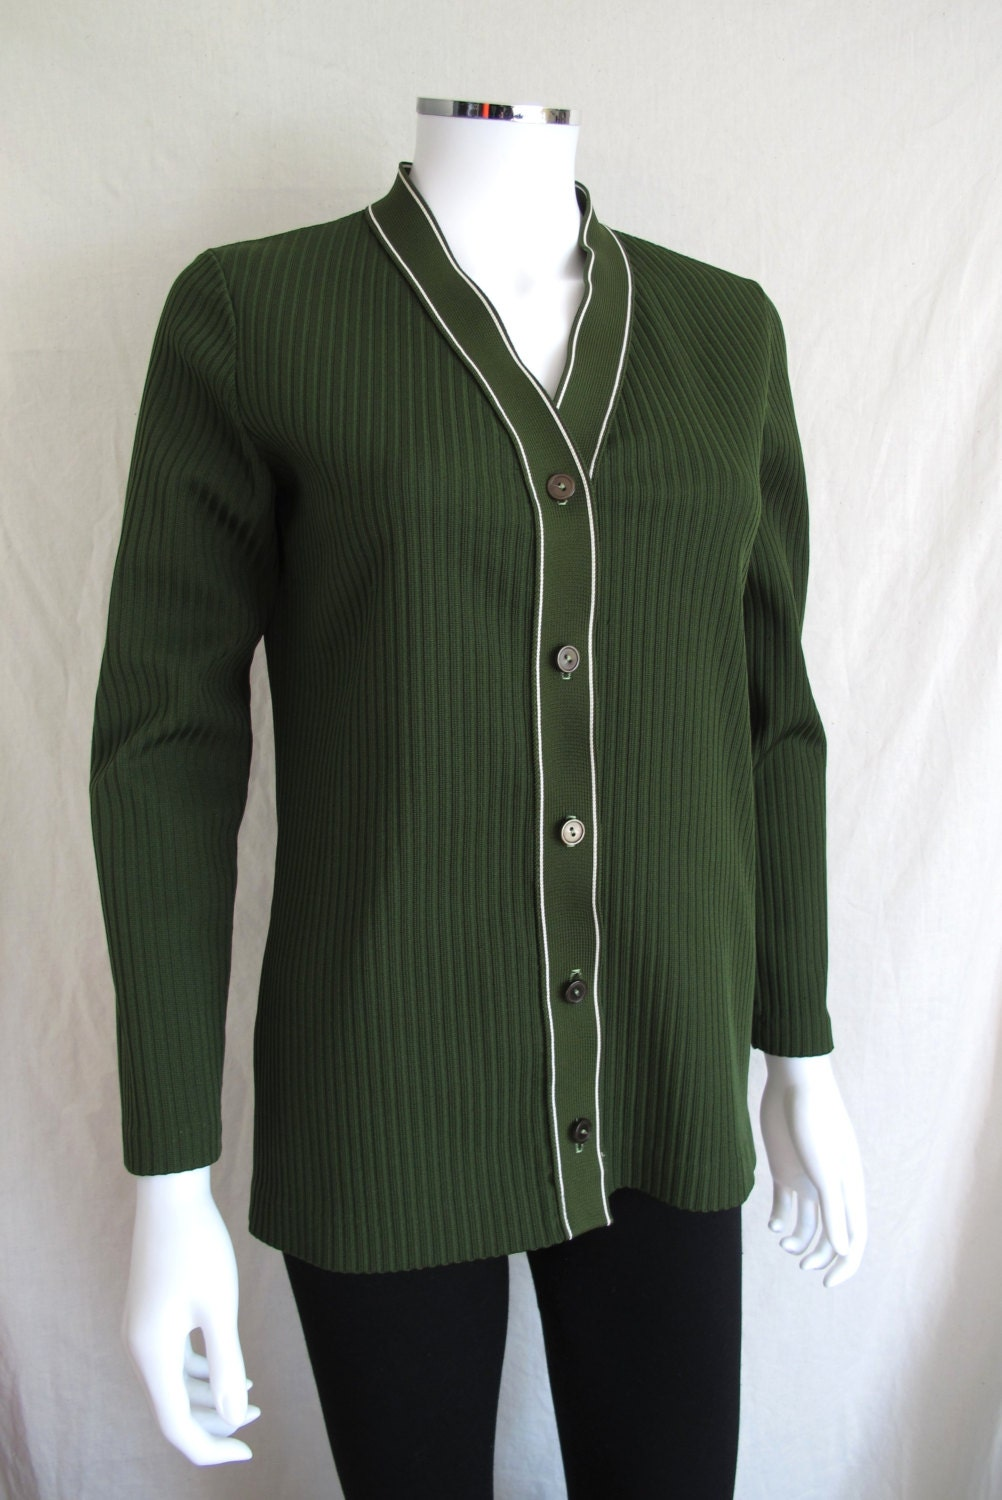 Find great deals on eBay for olive green cardigan. Shop with confidence.